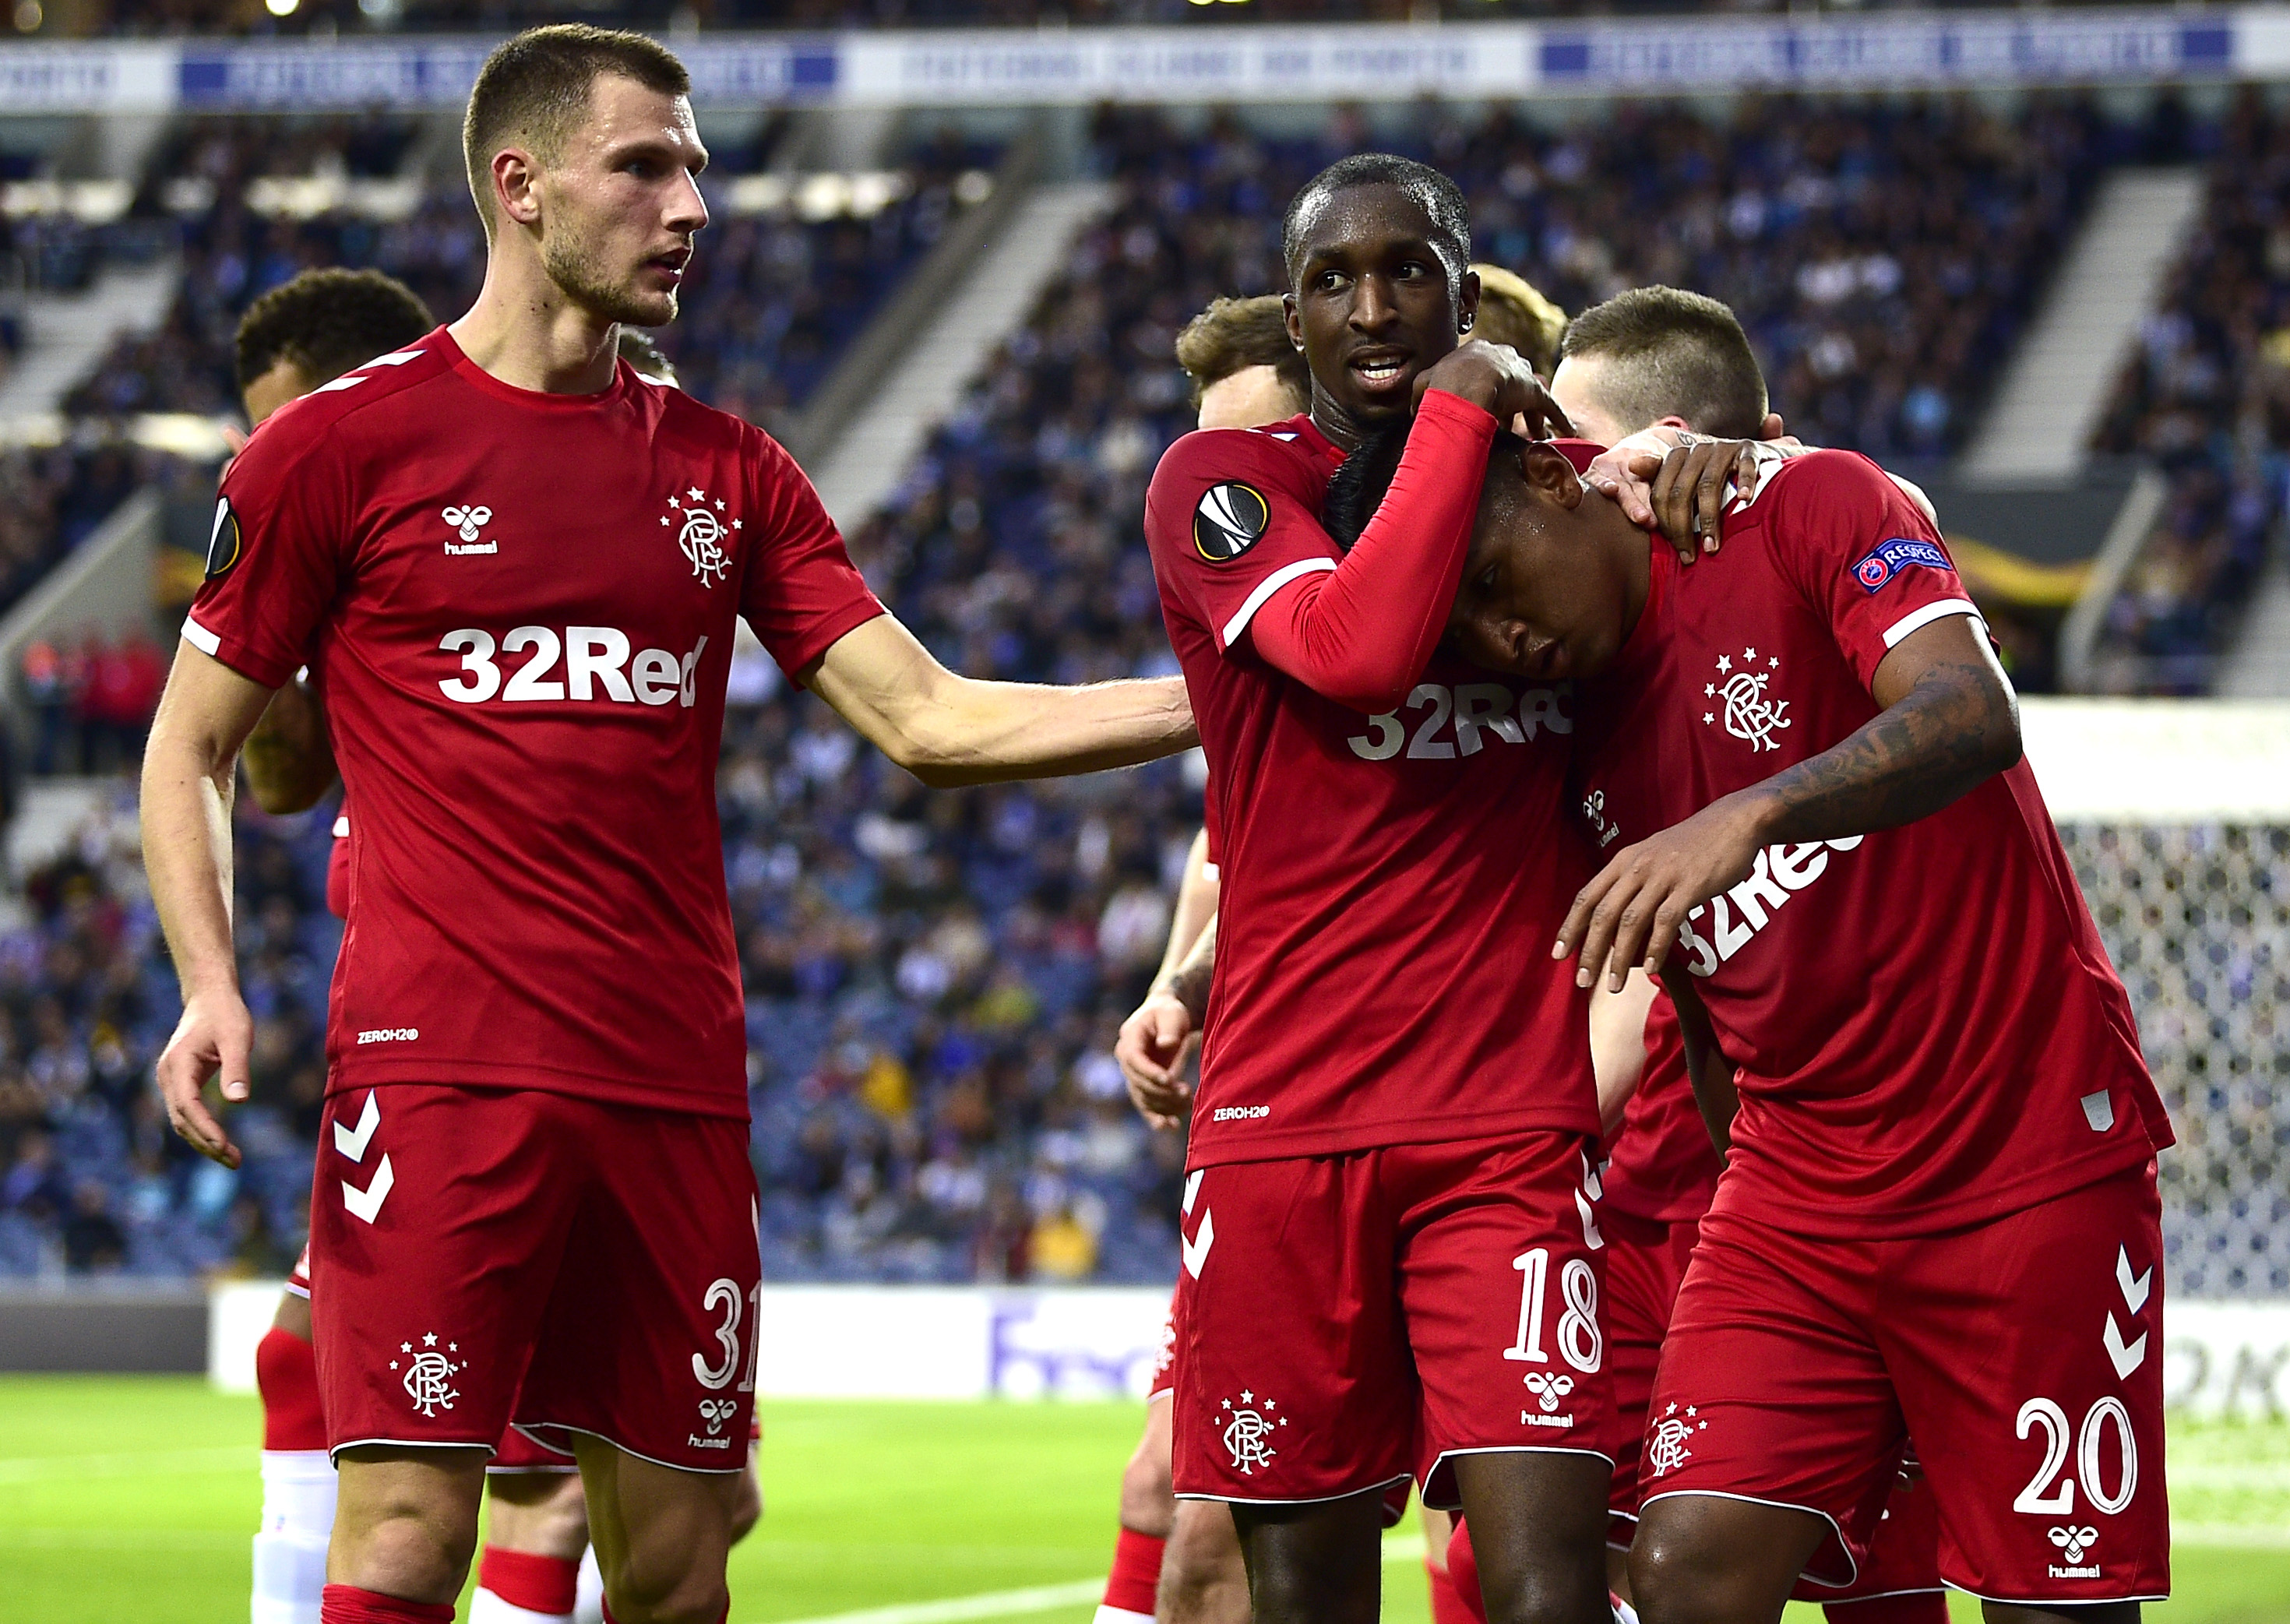 Borna Barisic, left, provided the assist for Rangers' goal